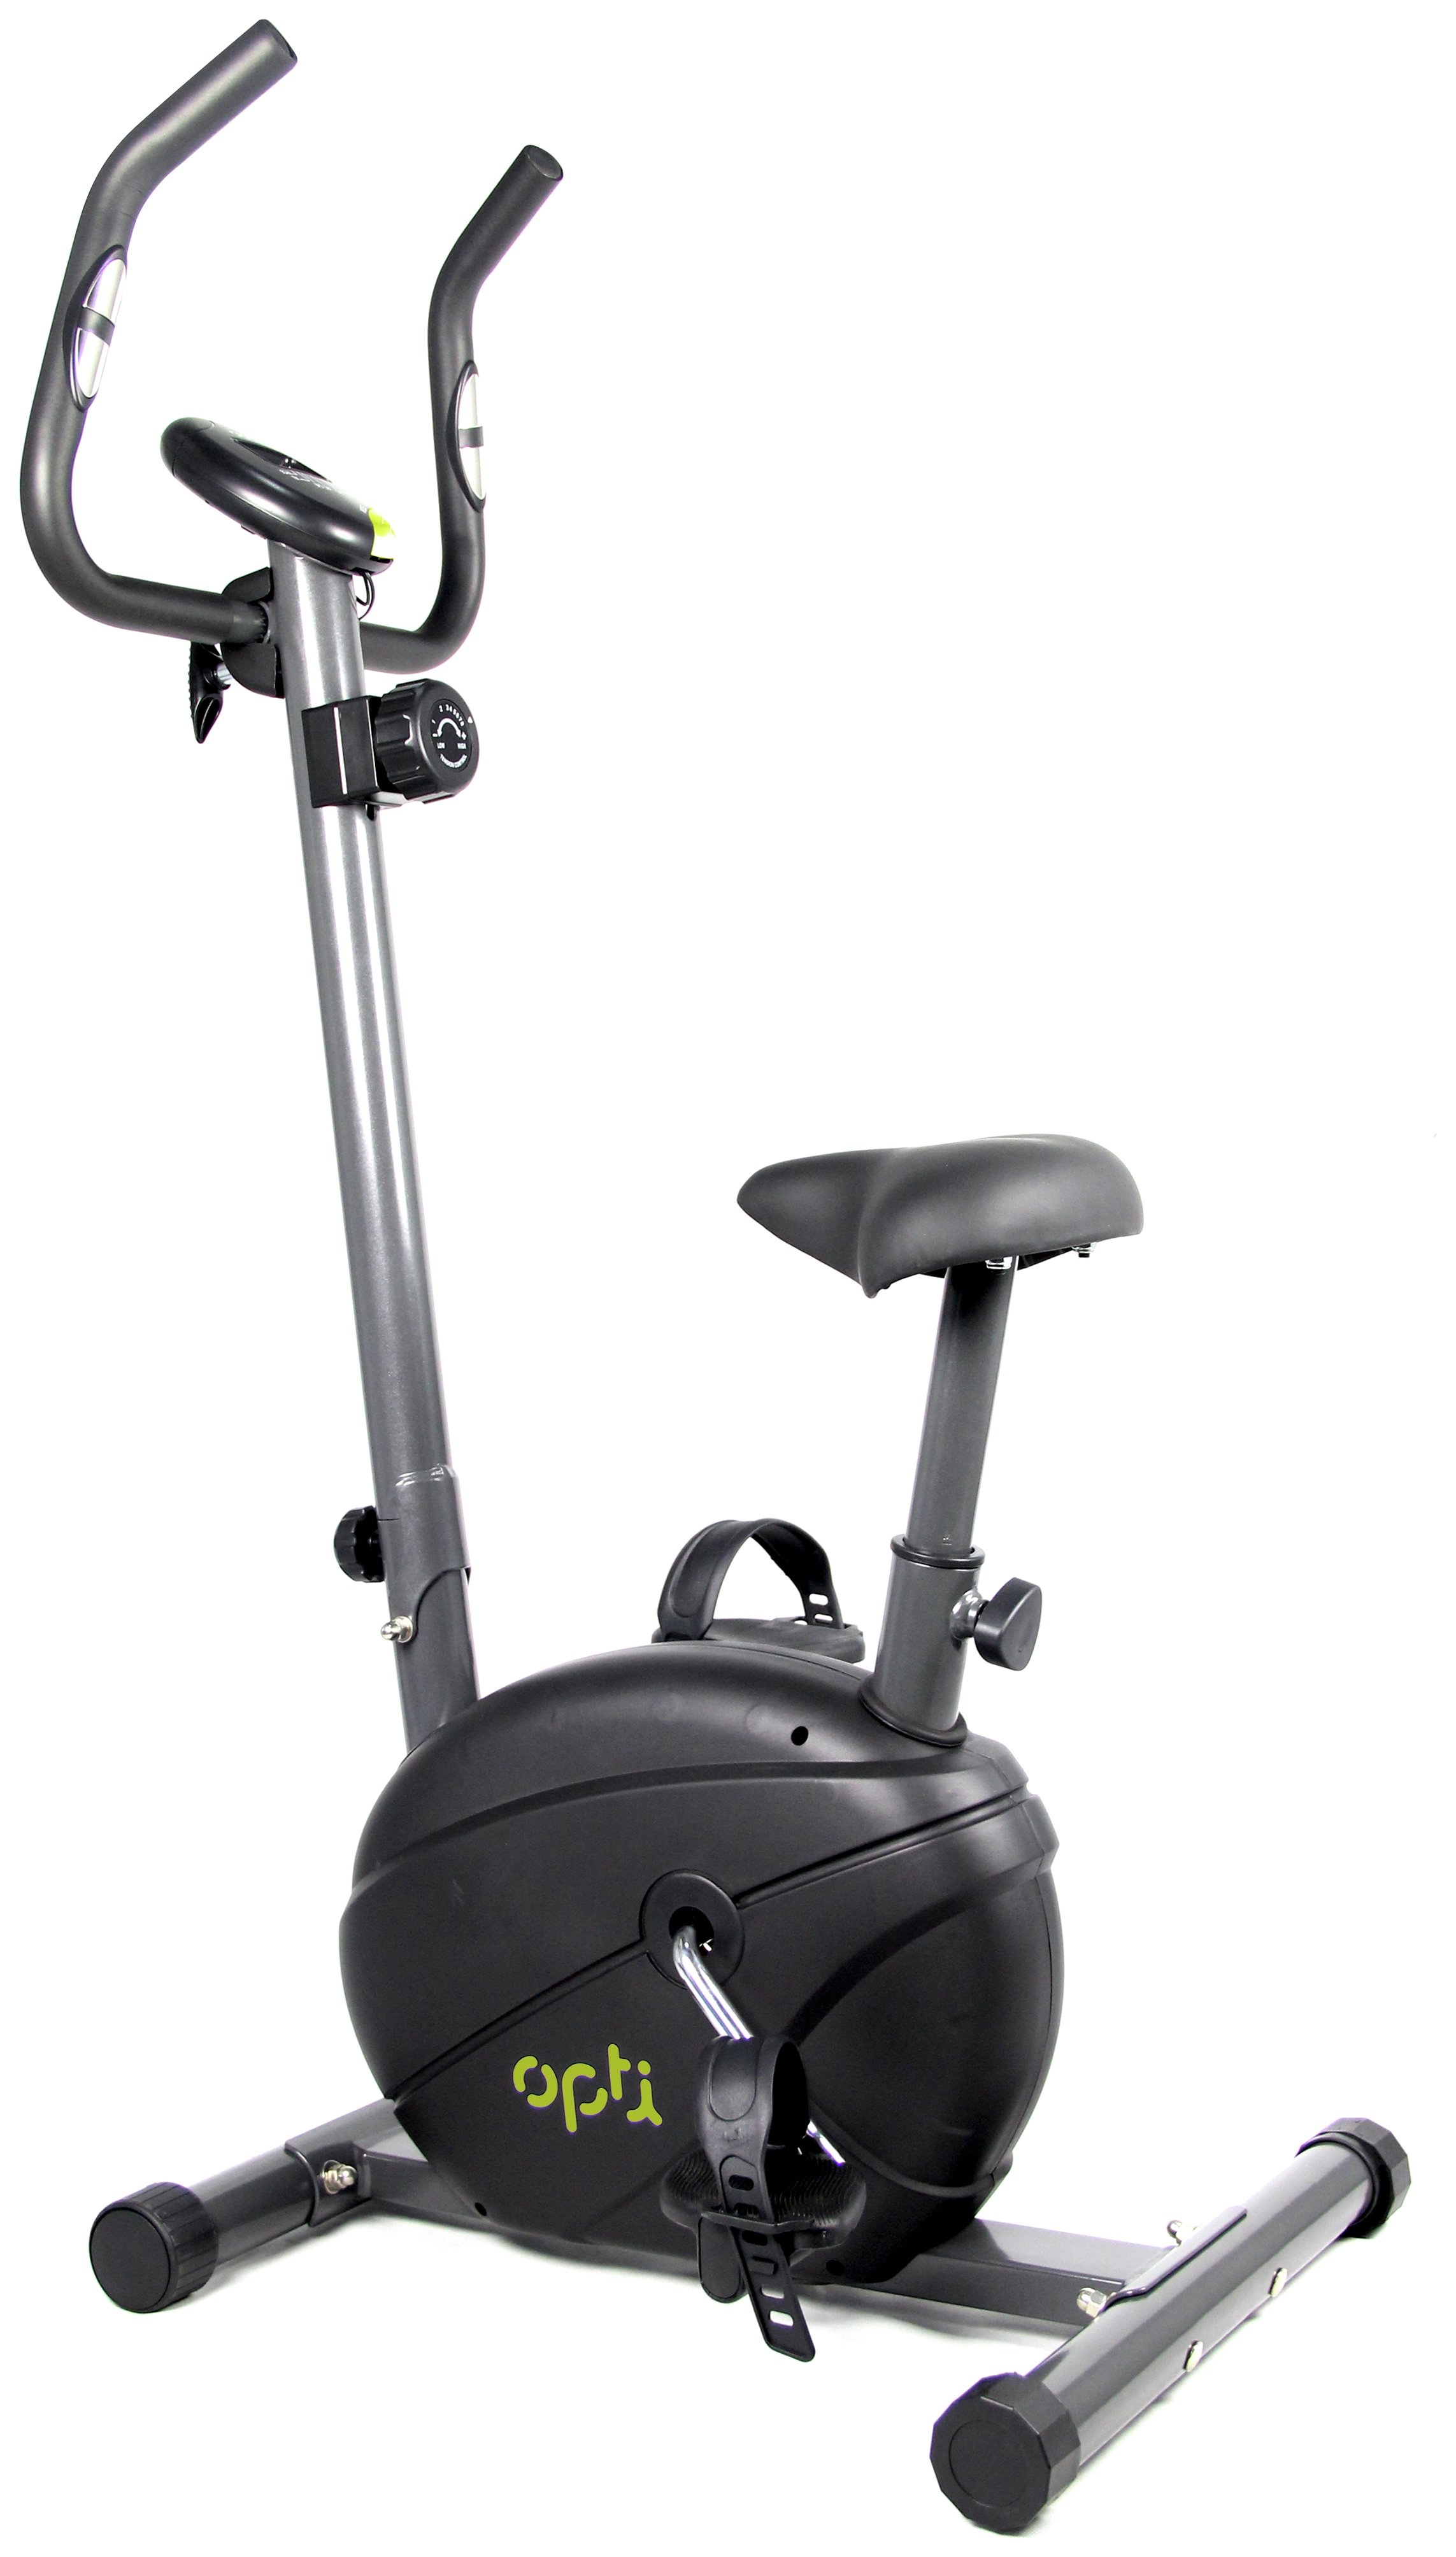 Opti Space Saver Exercise Bike lowest price